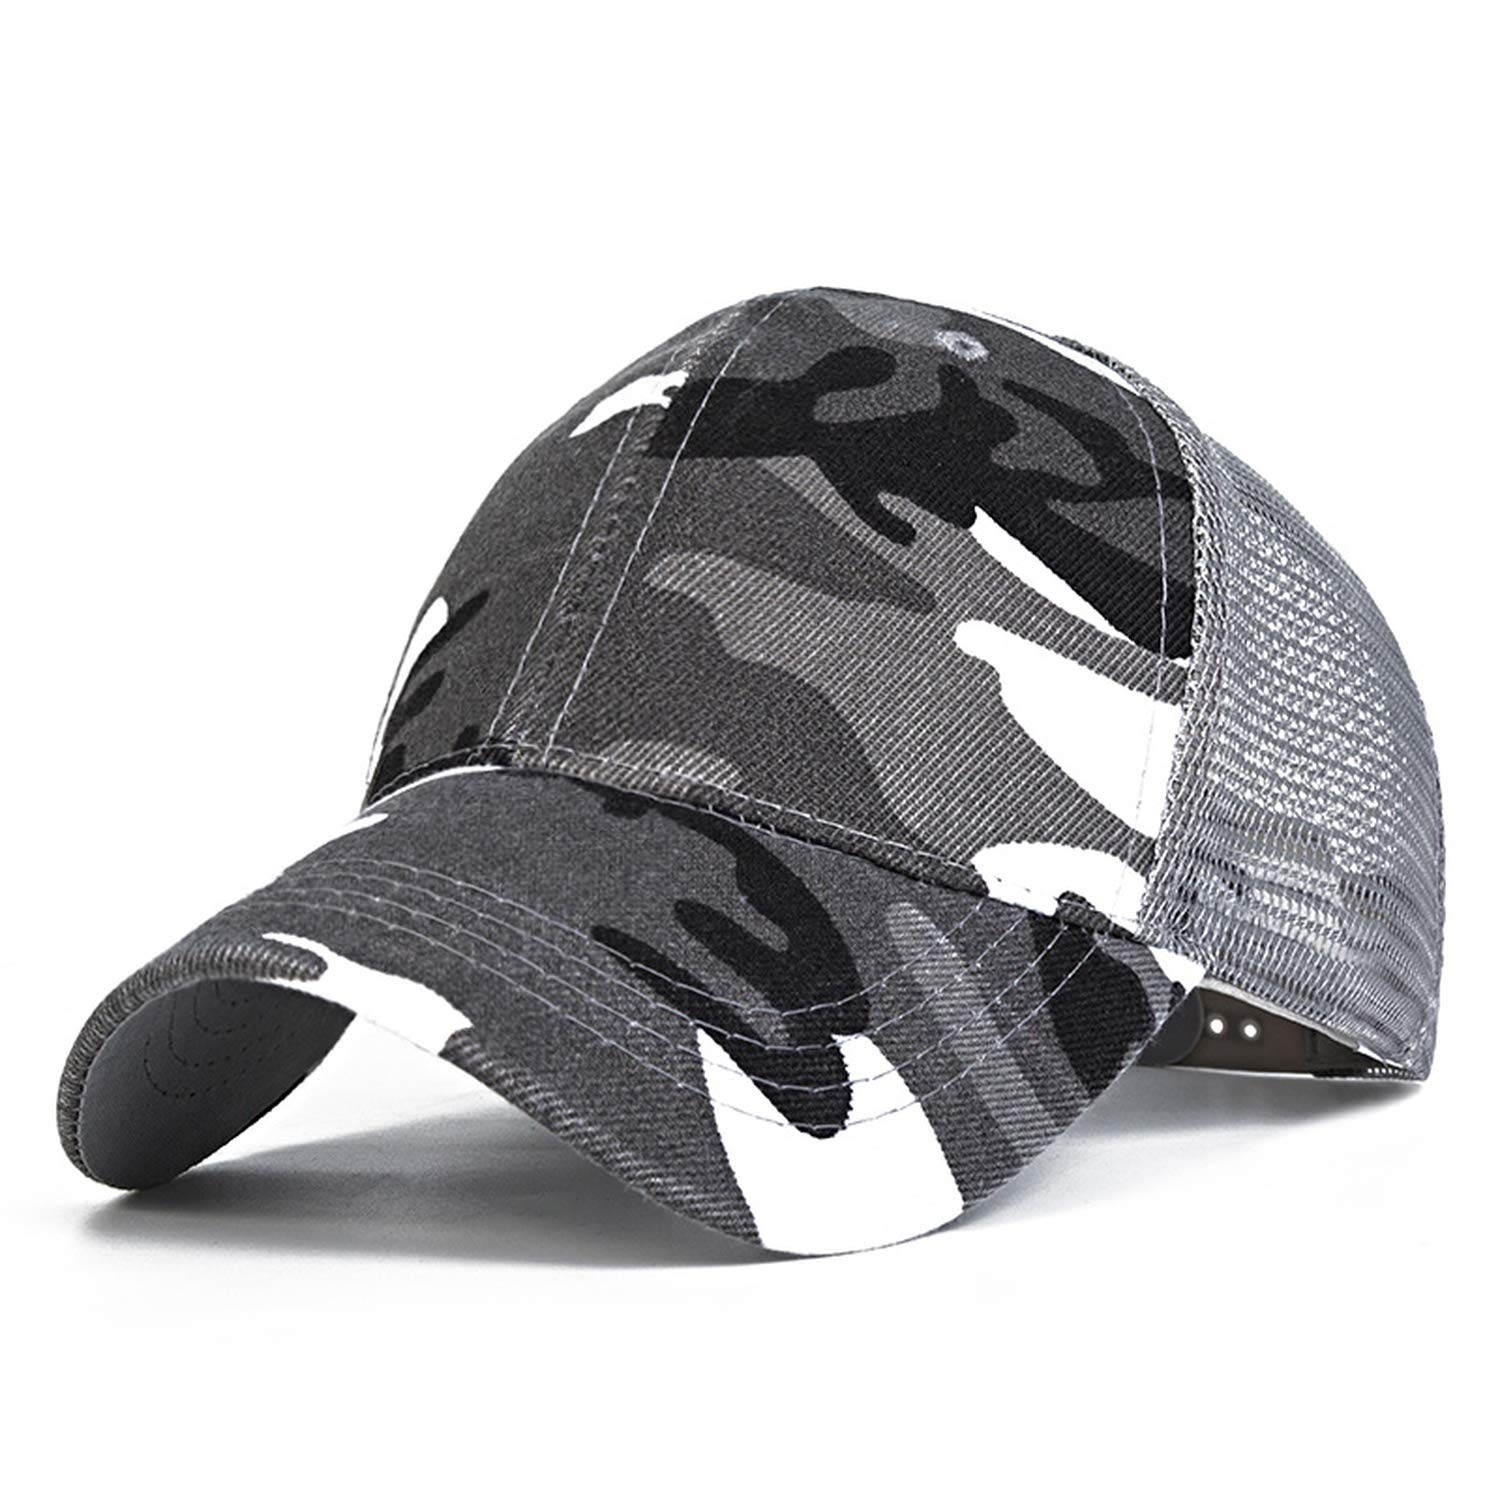 XuanHan 2018 Snow Camo Baseball Caps Men Summer Mesh Cap Tactical Camouflage Hat for Men Women at Amazon Womens Clothing store: